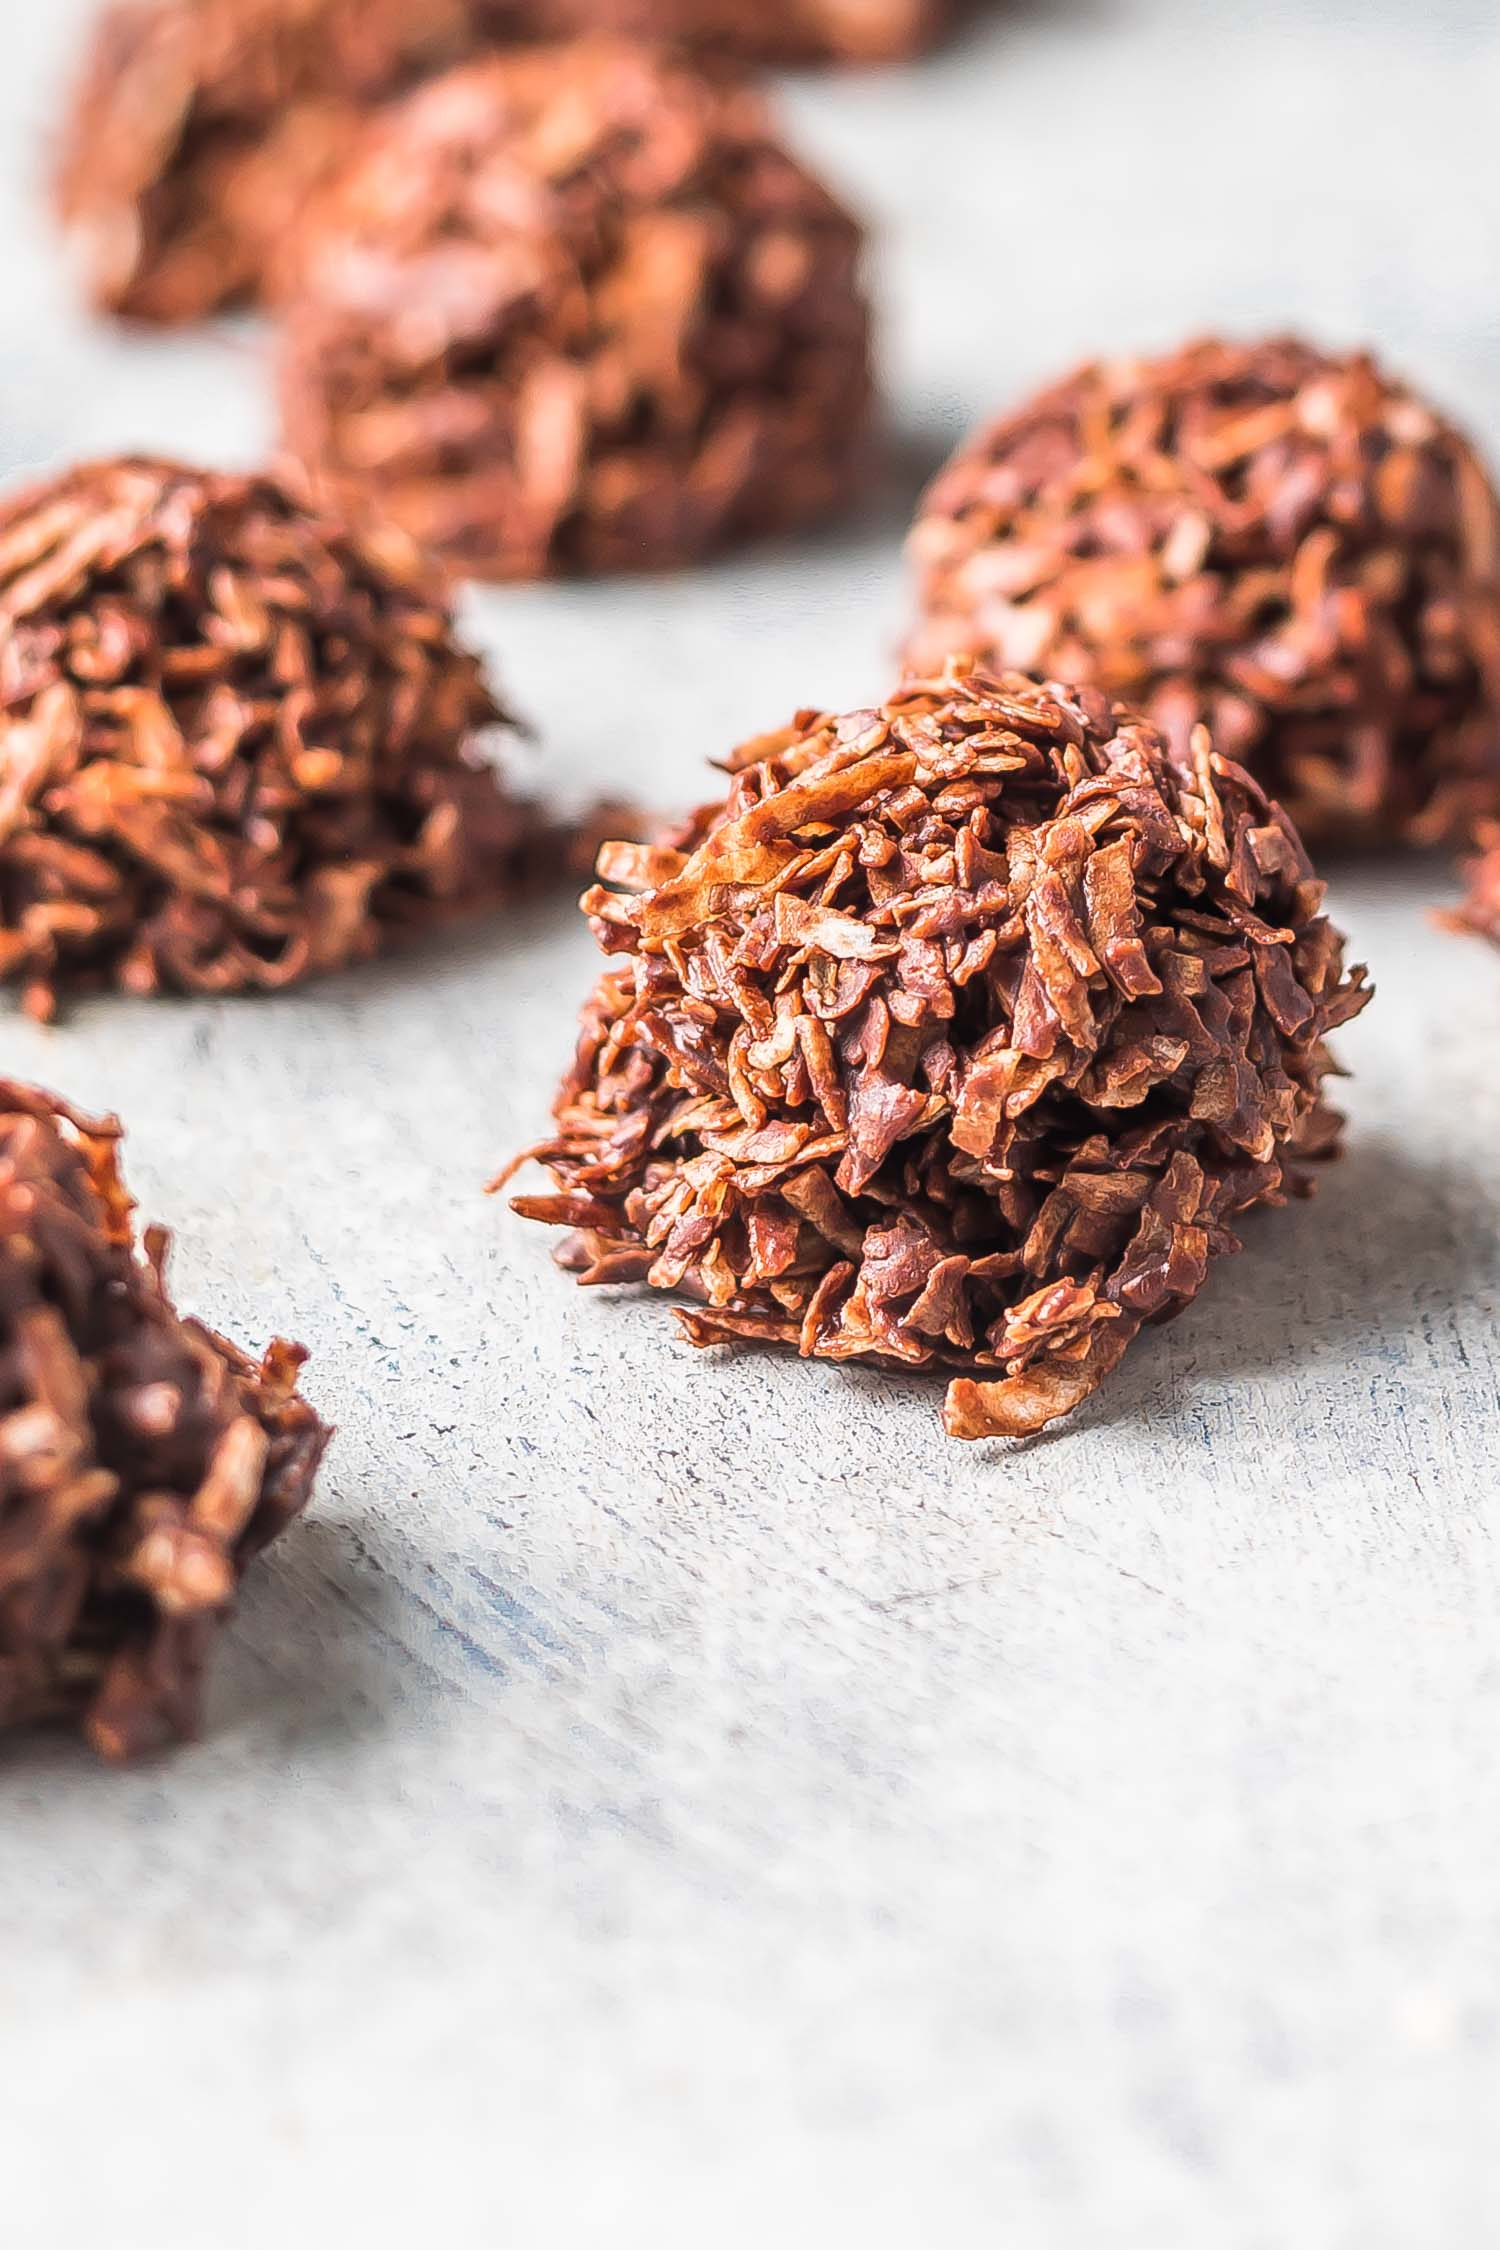 Keto Chocolate Macaroons on a grey background